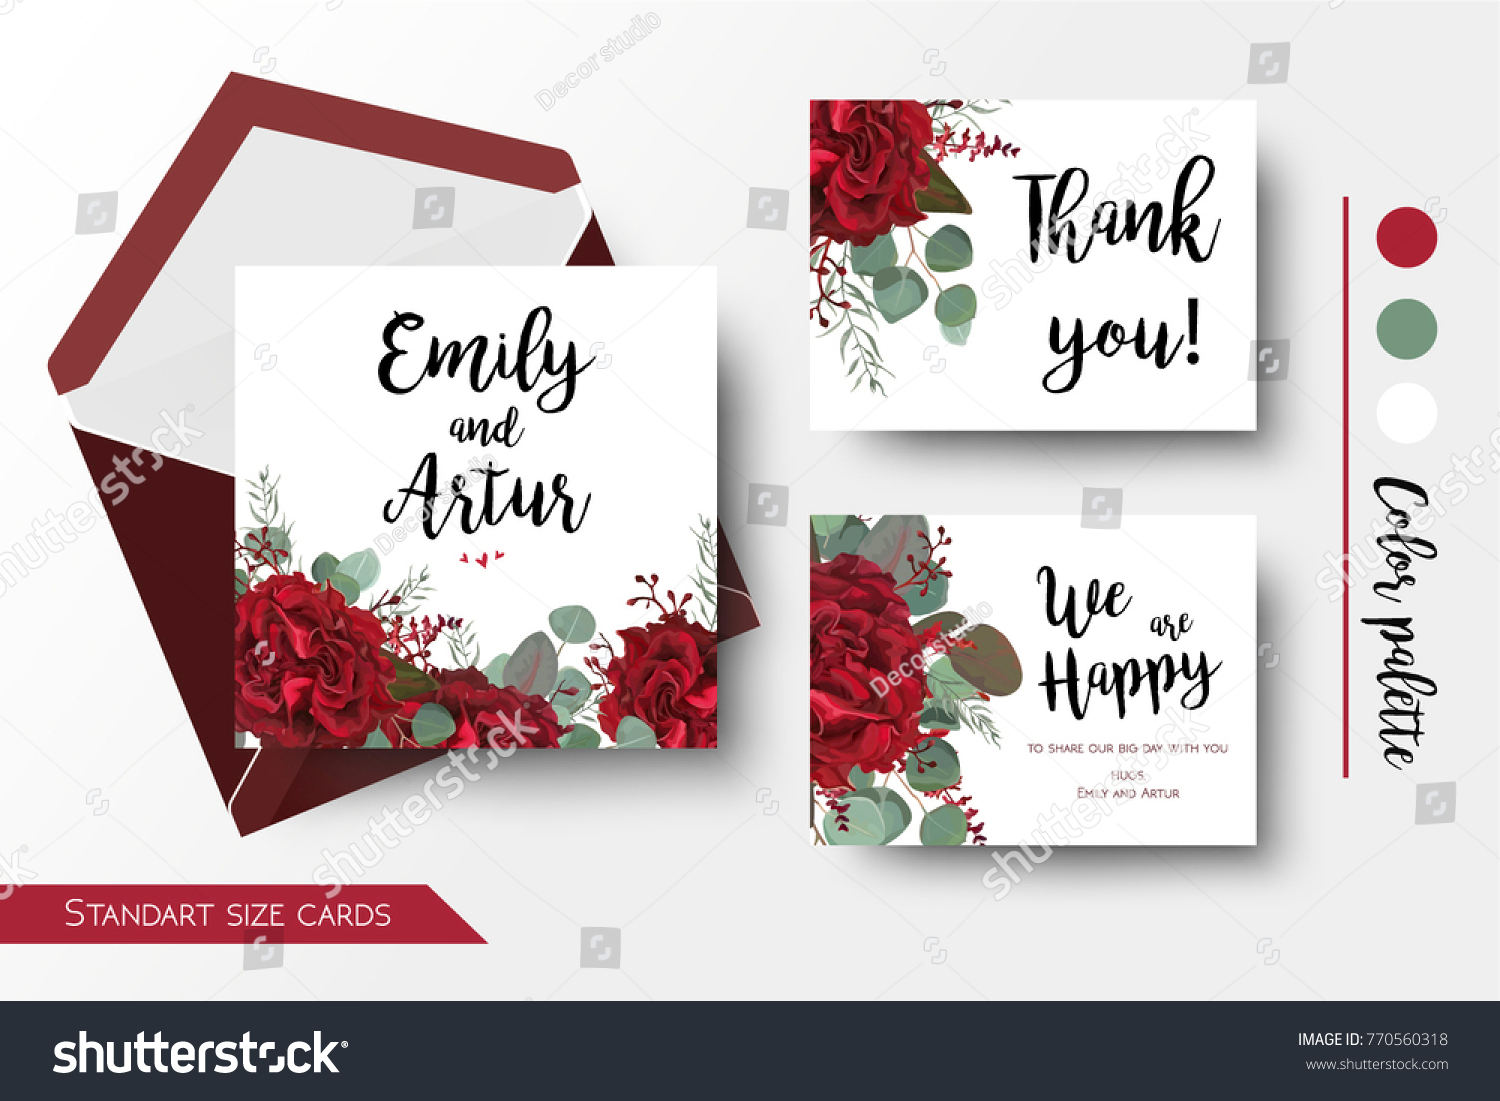 Wedding Invite Invitation Thank You Greeting Stock Vector 770560318 ...